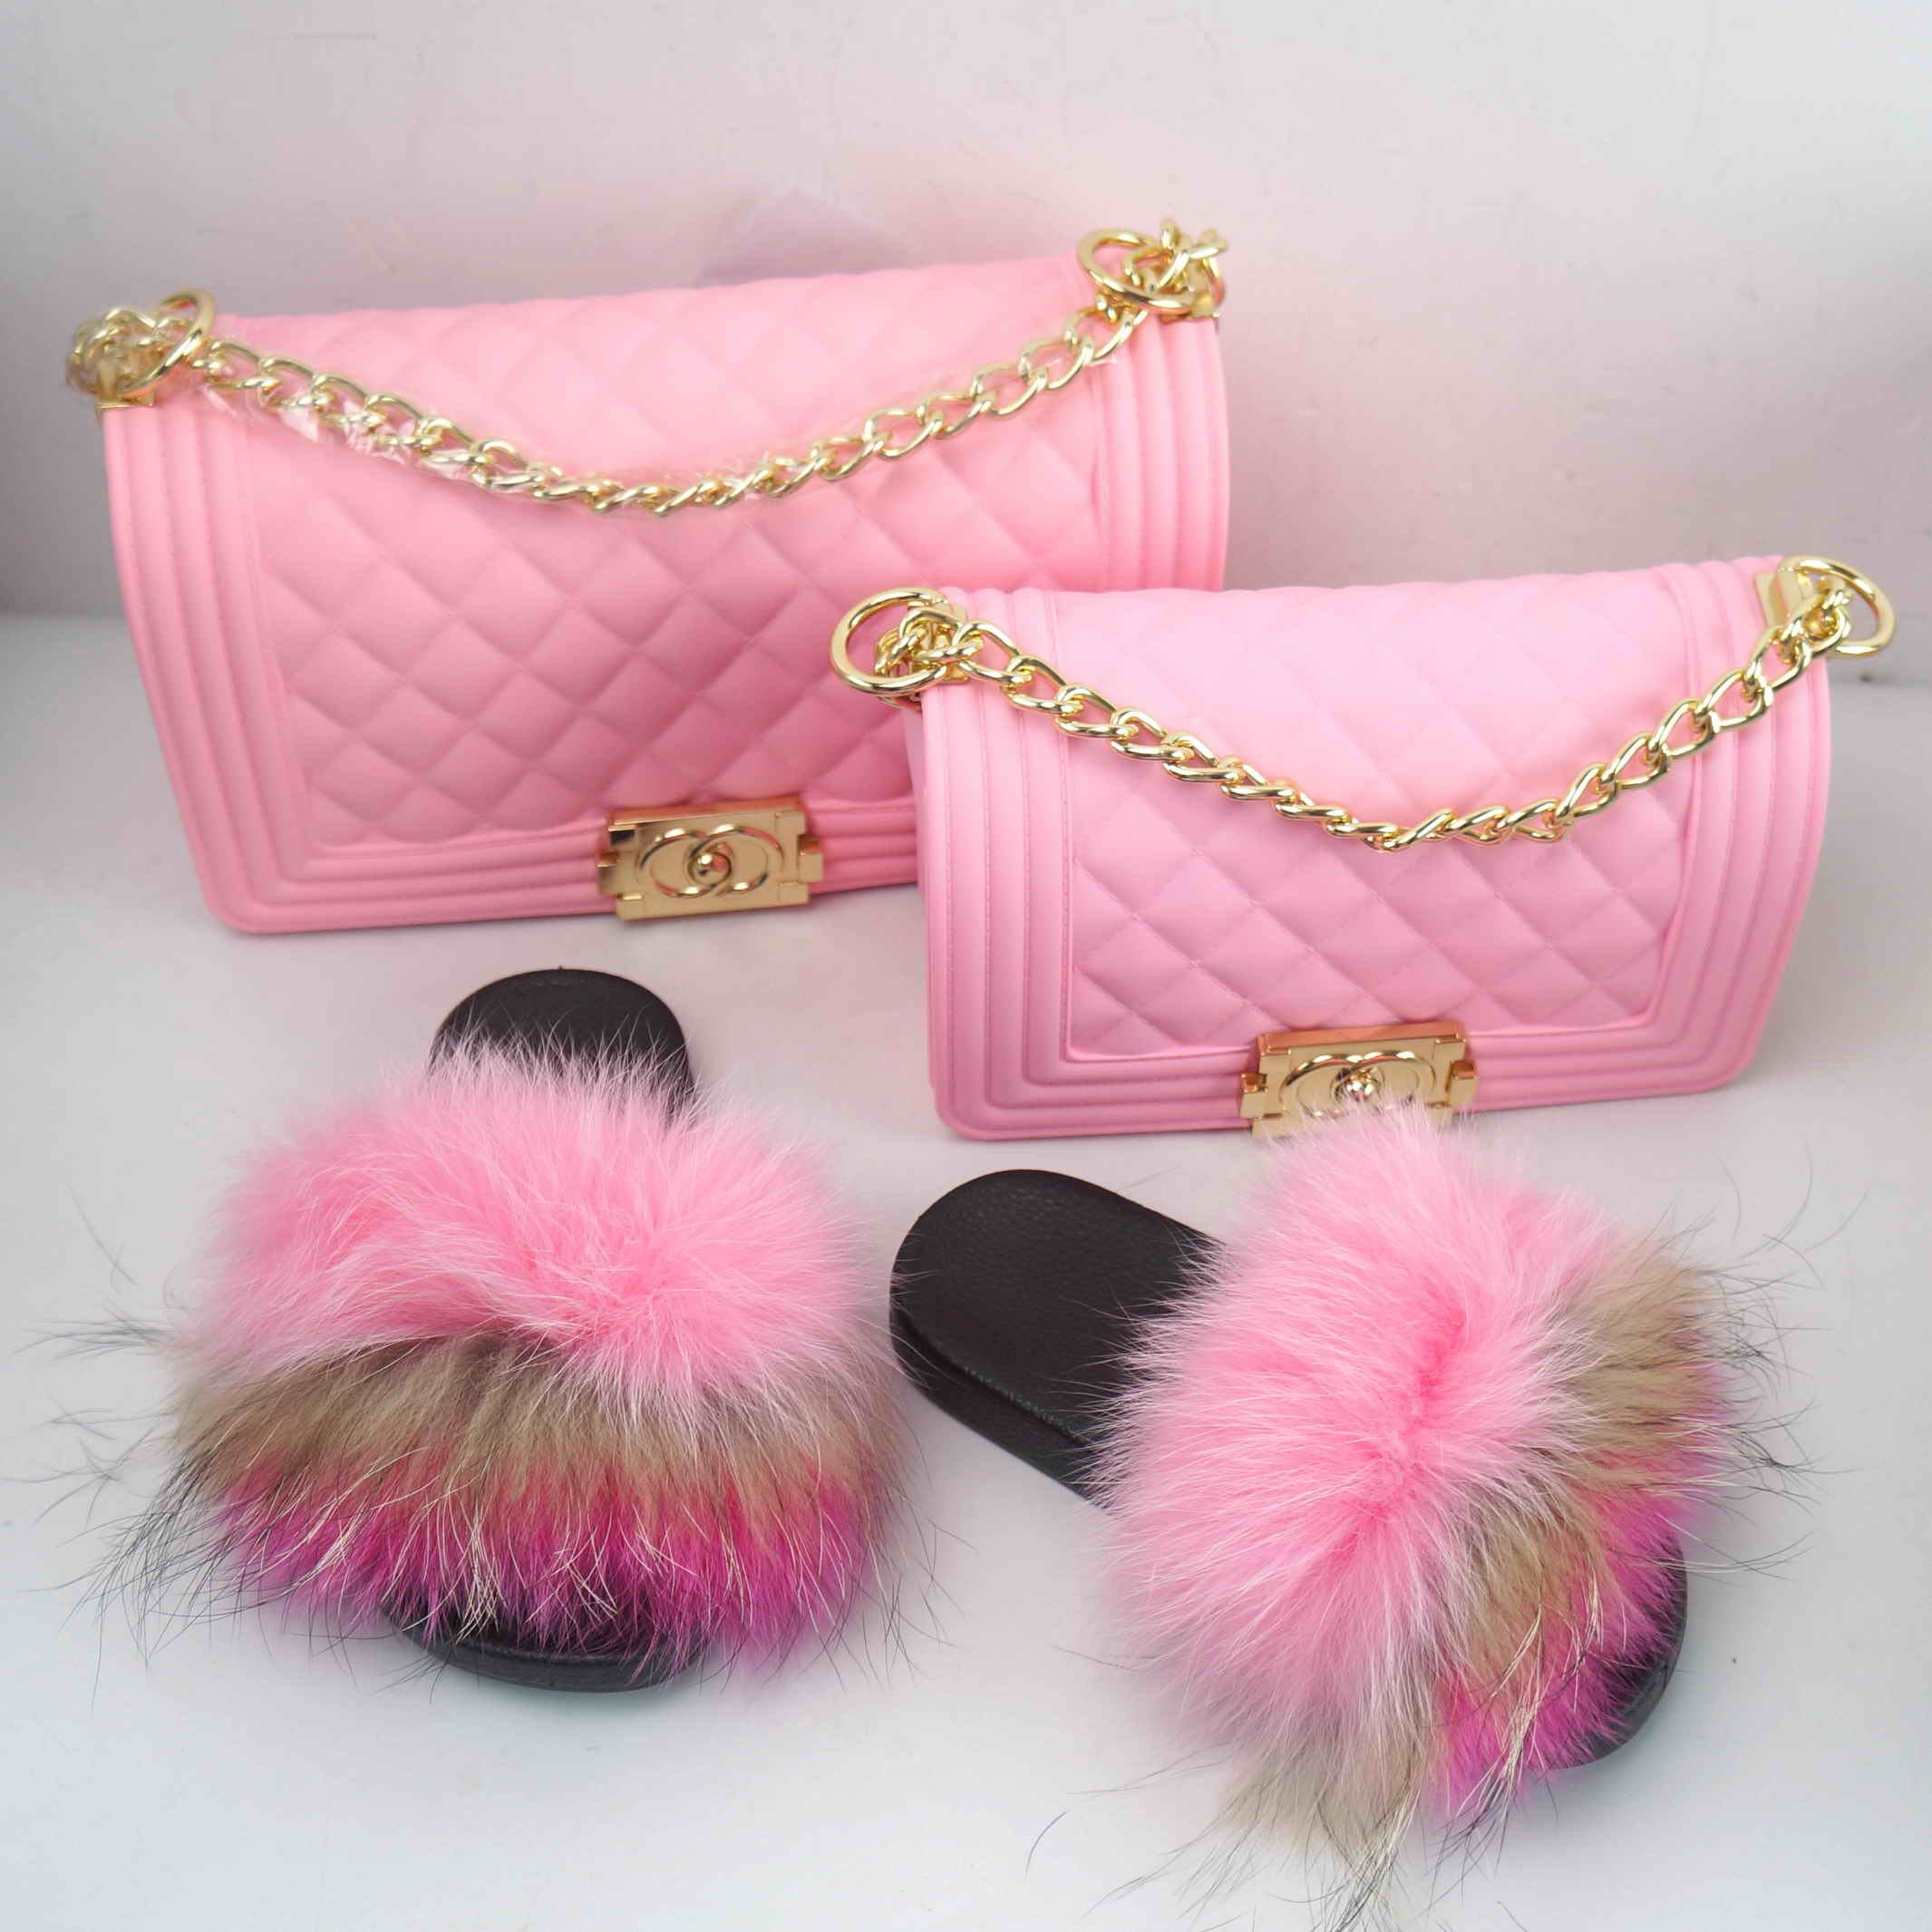 2020 fashion selling colorful fur fluffy slides/shoes match jelly purse /handbags for women